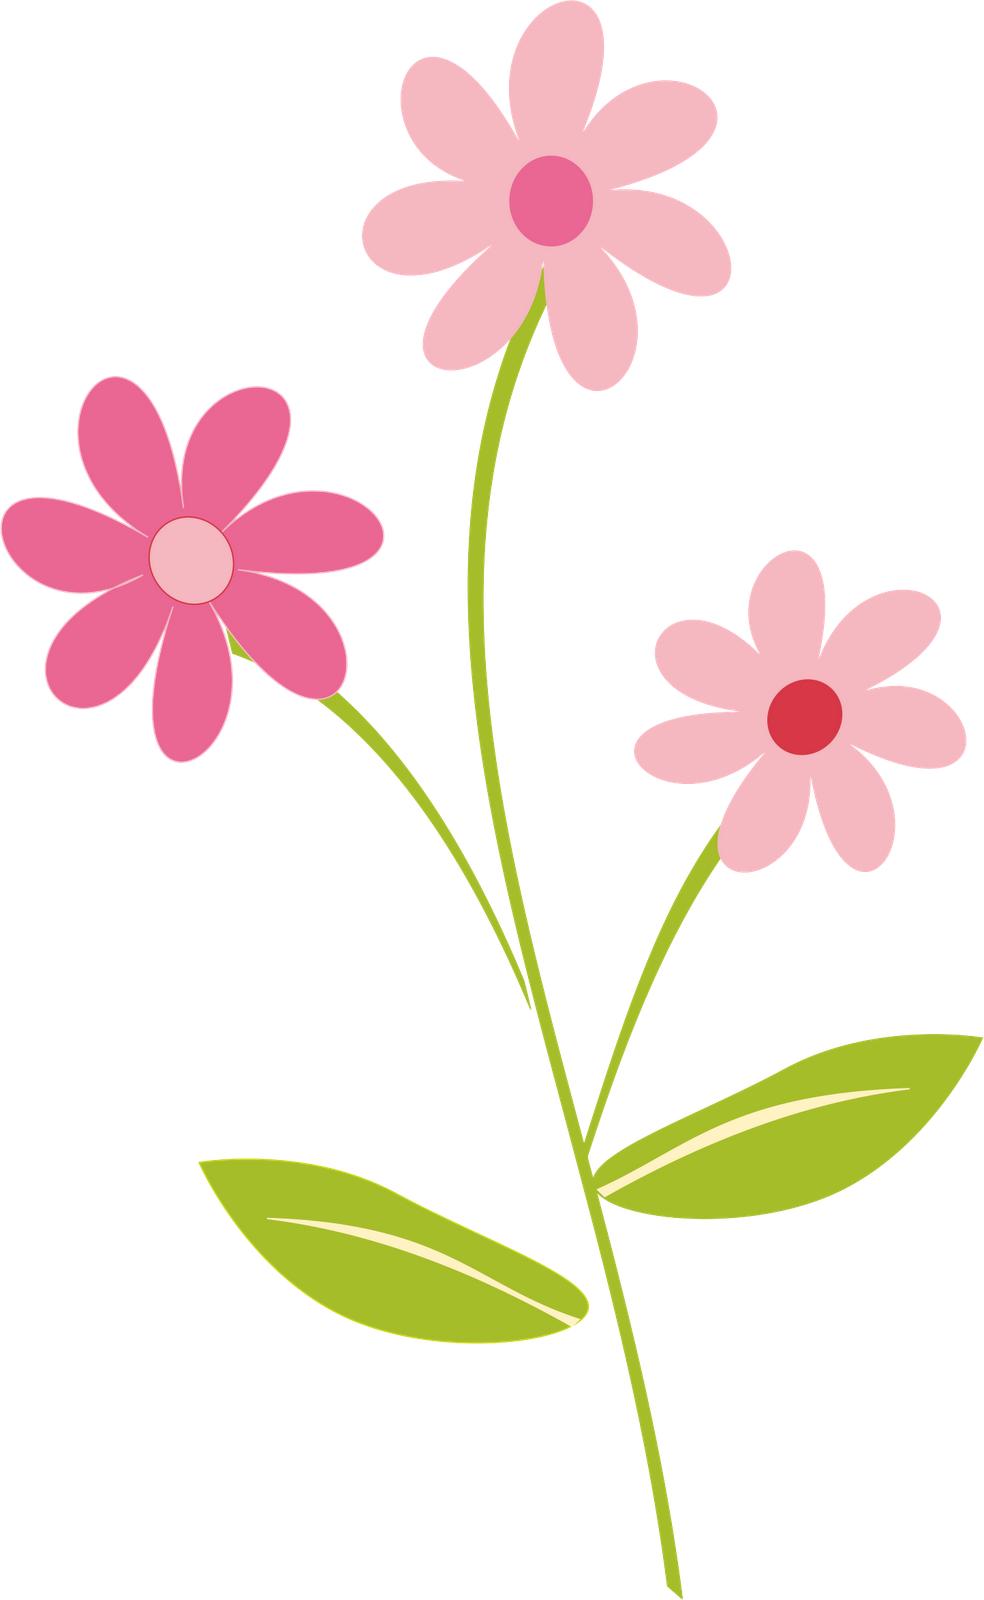 spring flowers clipart at getdrawings com free for personal use rh getdrawings com spring flowers clip art pre-k spring flower clip art